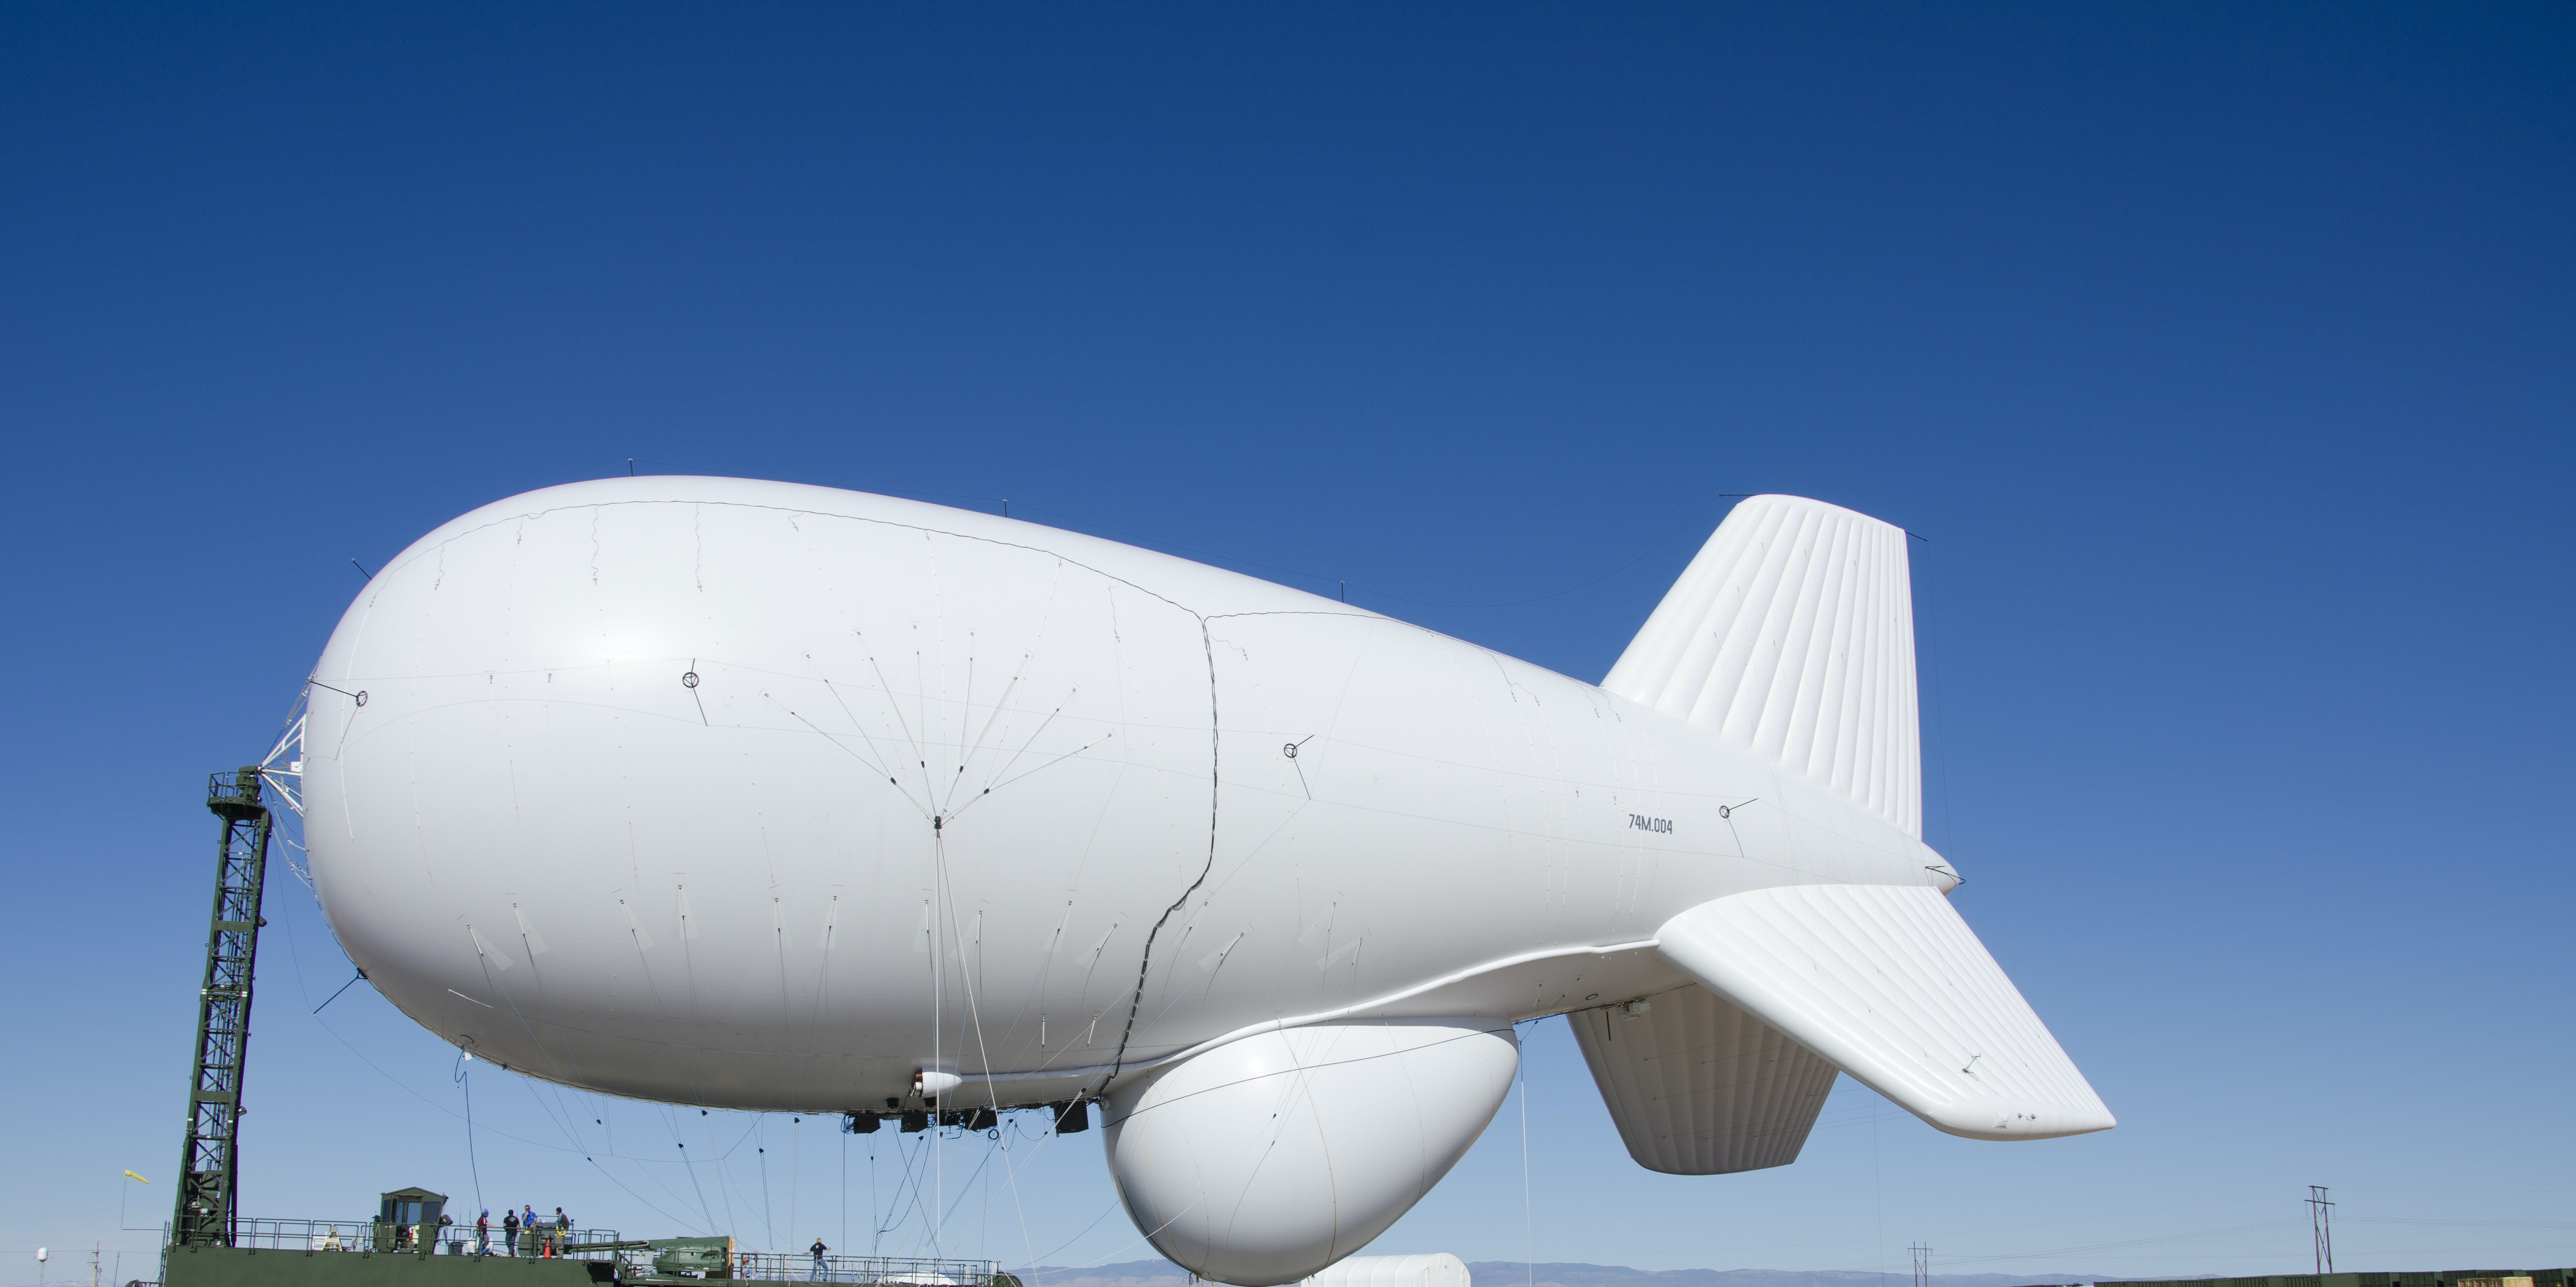 Untethered Military Surveillance Blimp Floats 130 or So Miles Before Landing in Bloomsburg, Pennsylvania